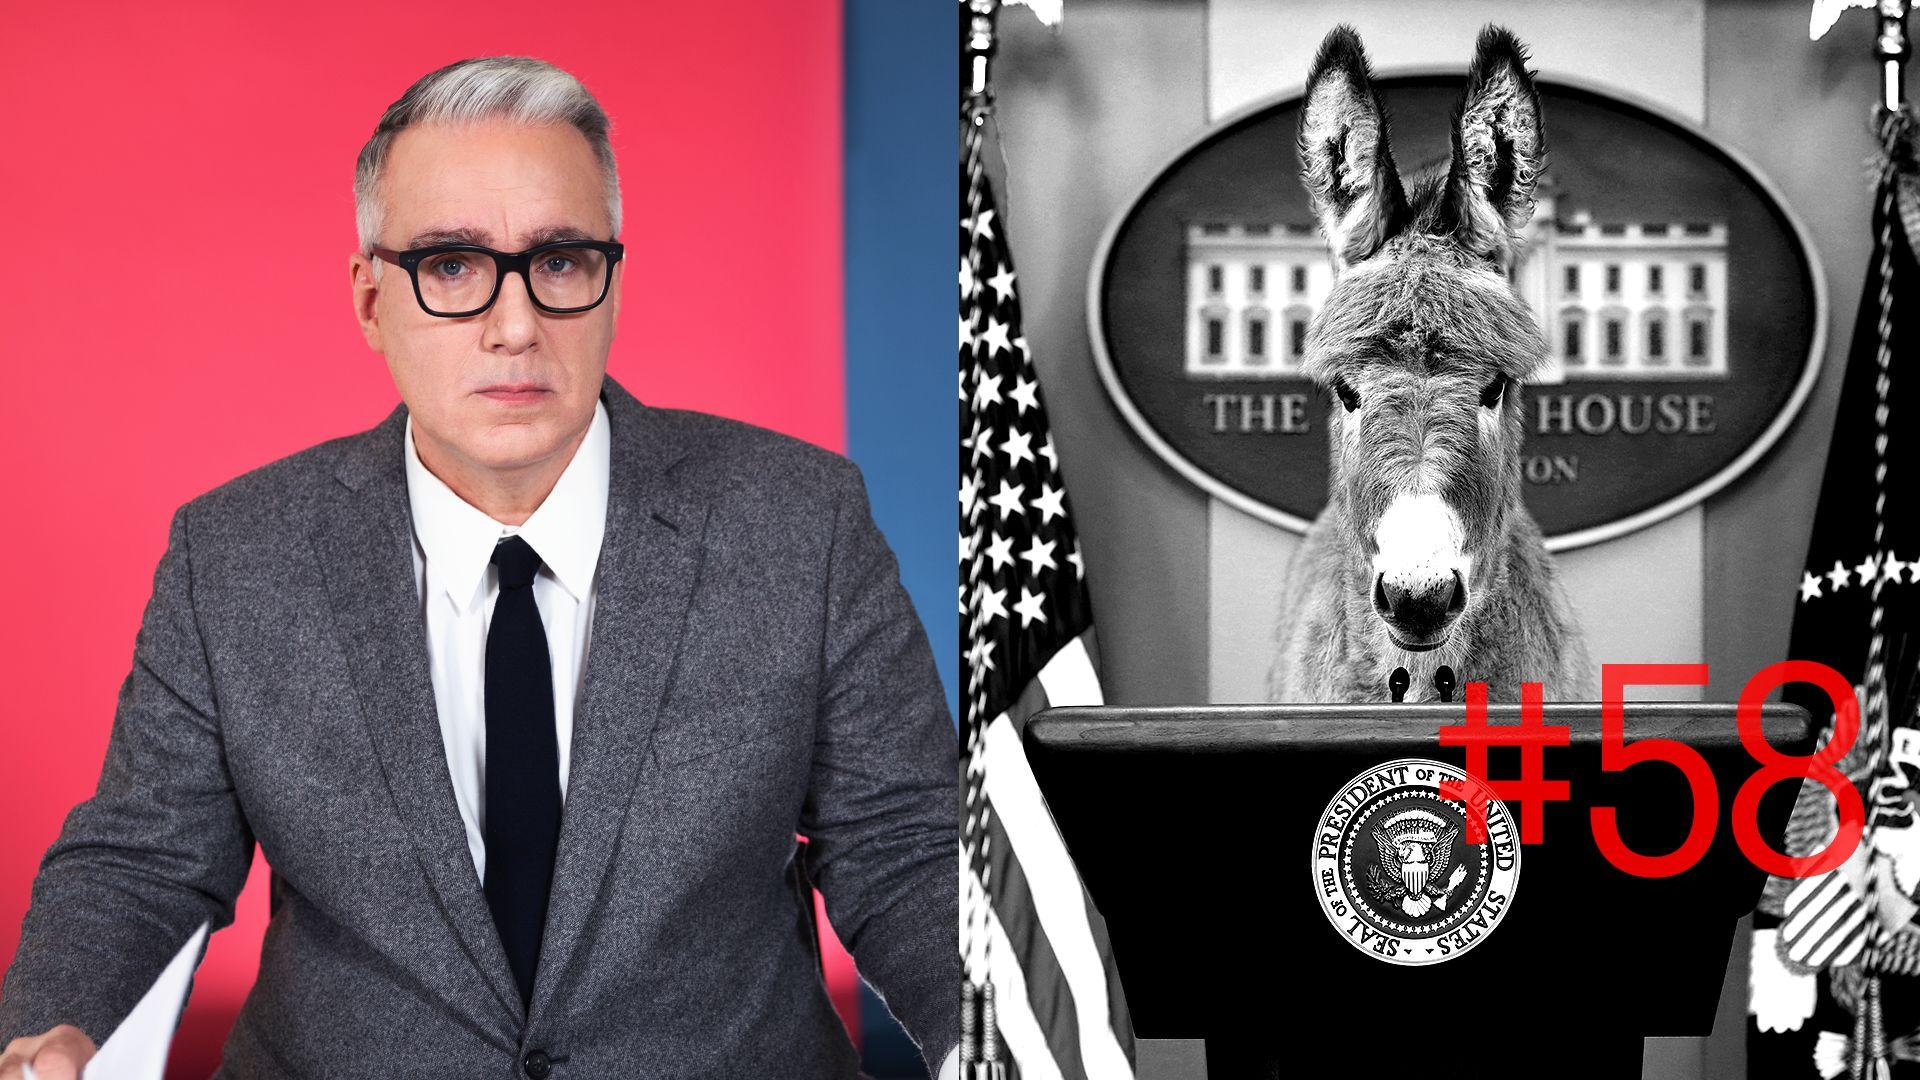 Keith Olbermann Calls Out Trump: 'You Are A Jackass'